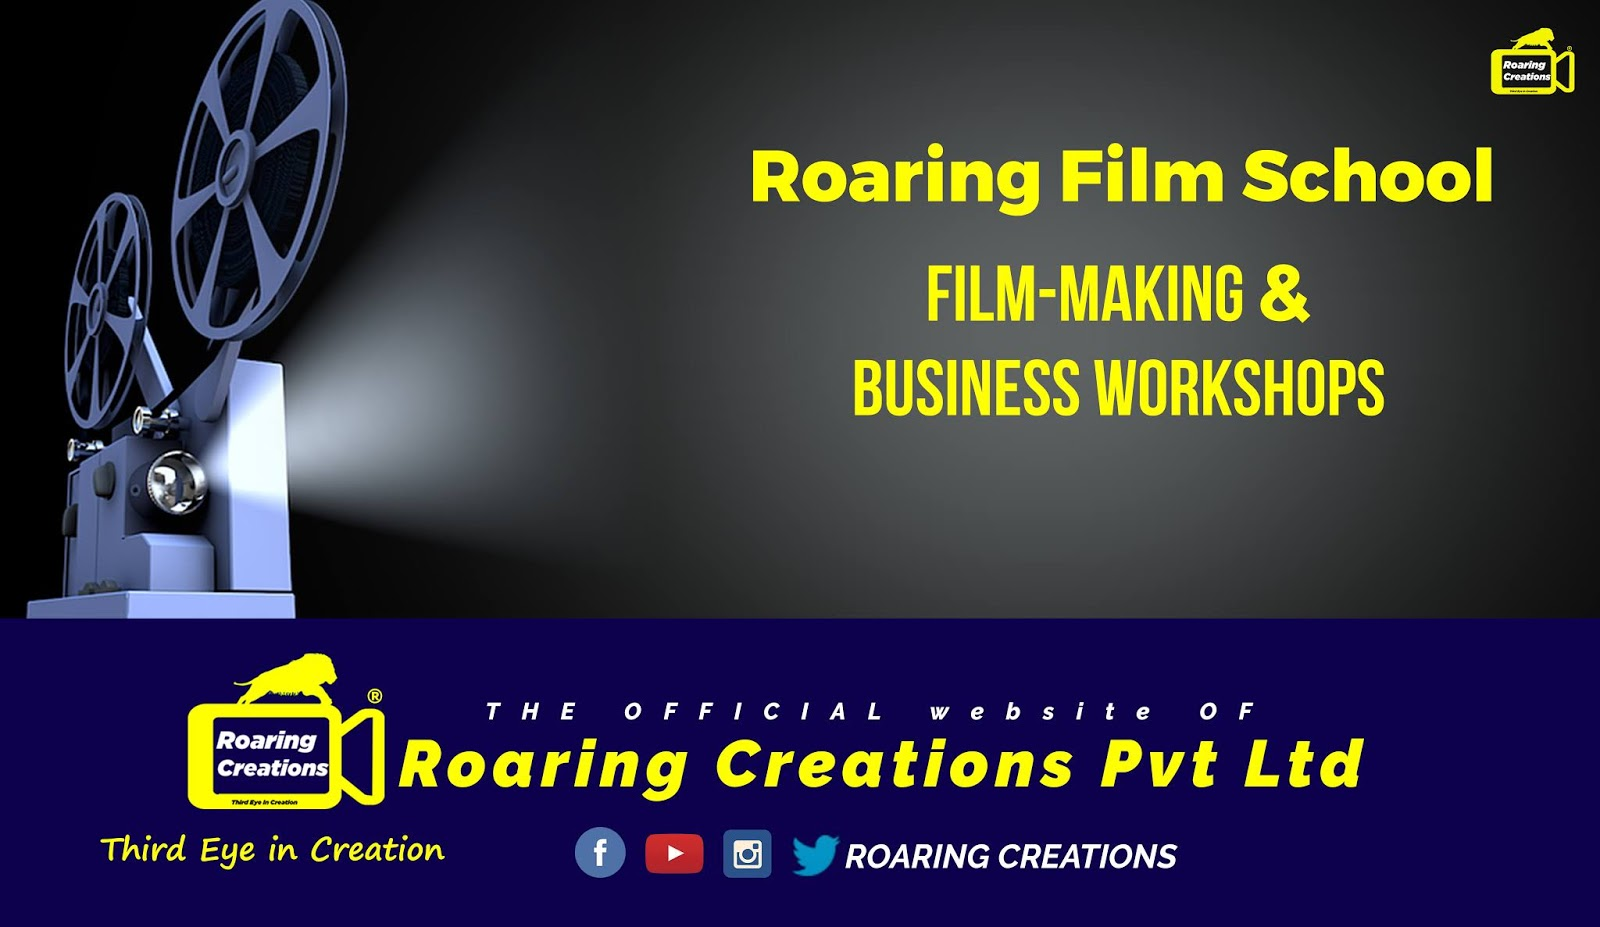 Services of Roaring Creations Private Limited